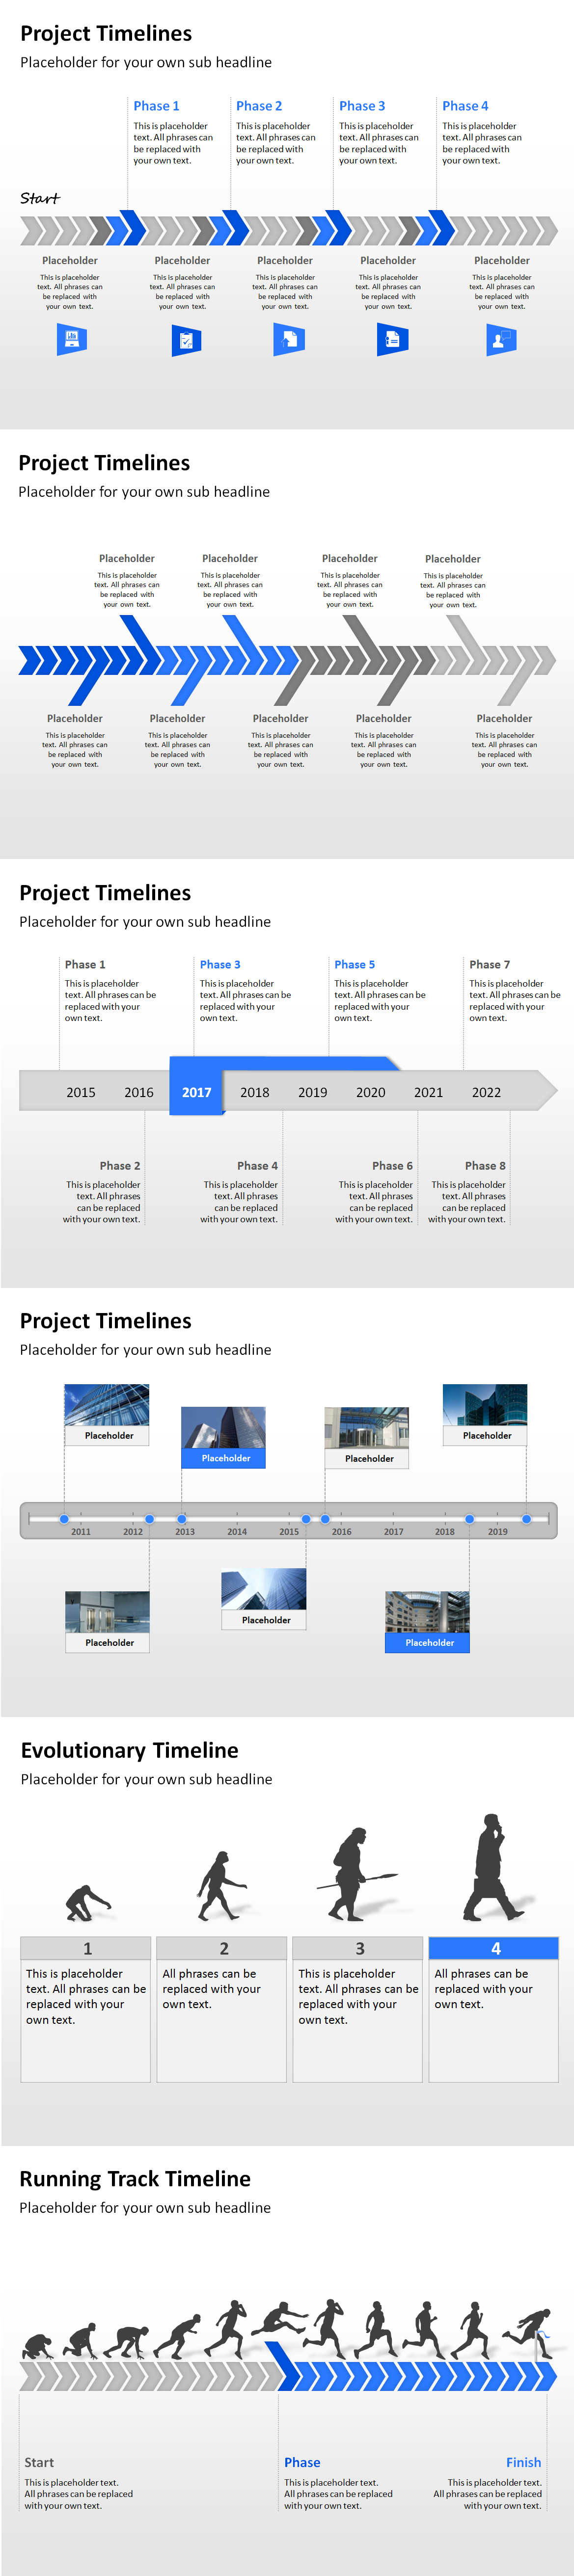 Project Timeline Templates To Display Planning Operation And